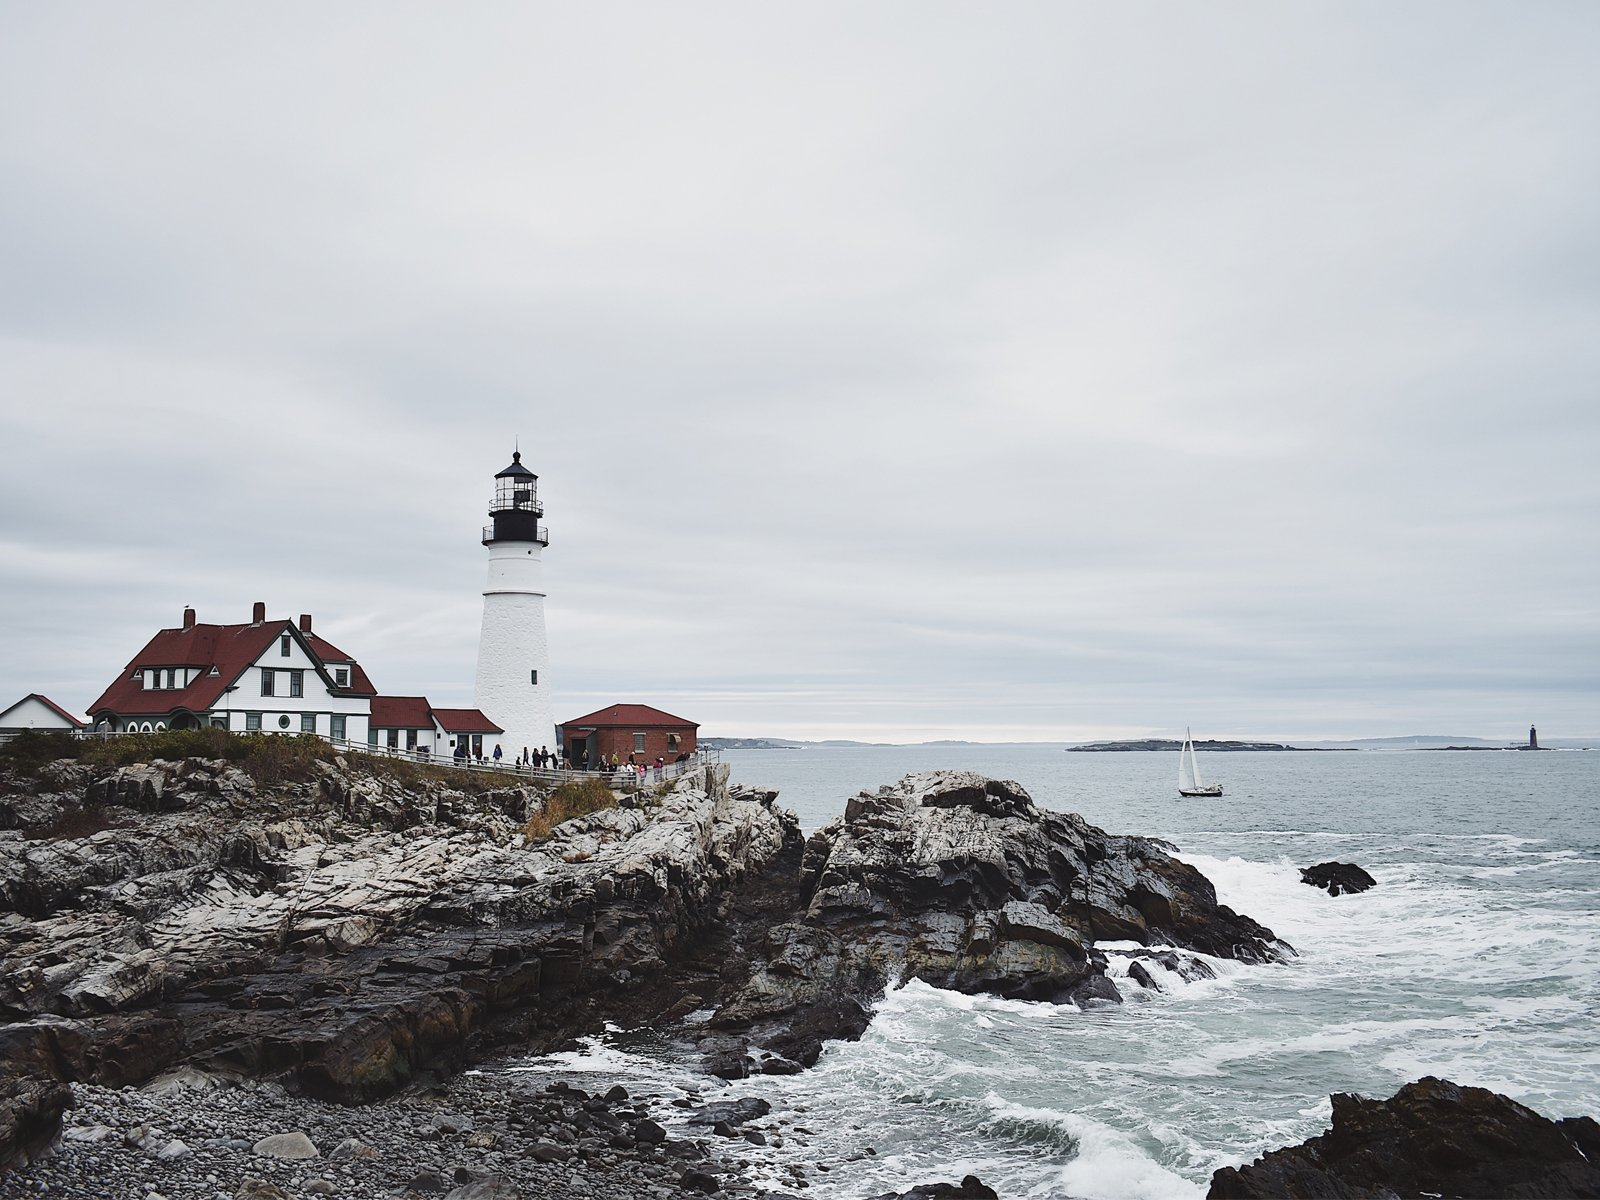 Portland Head Lighthouse near Cape Elizabeth, Maine